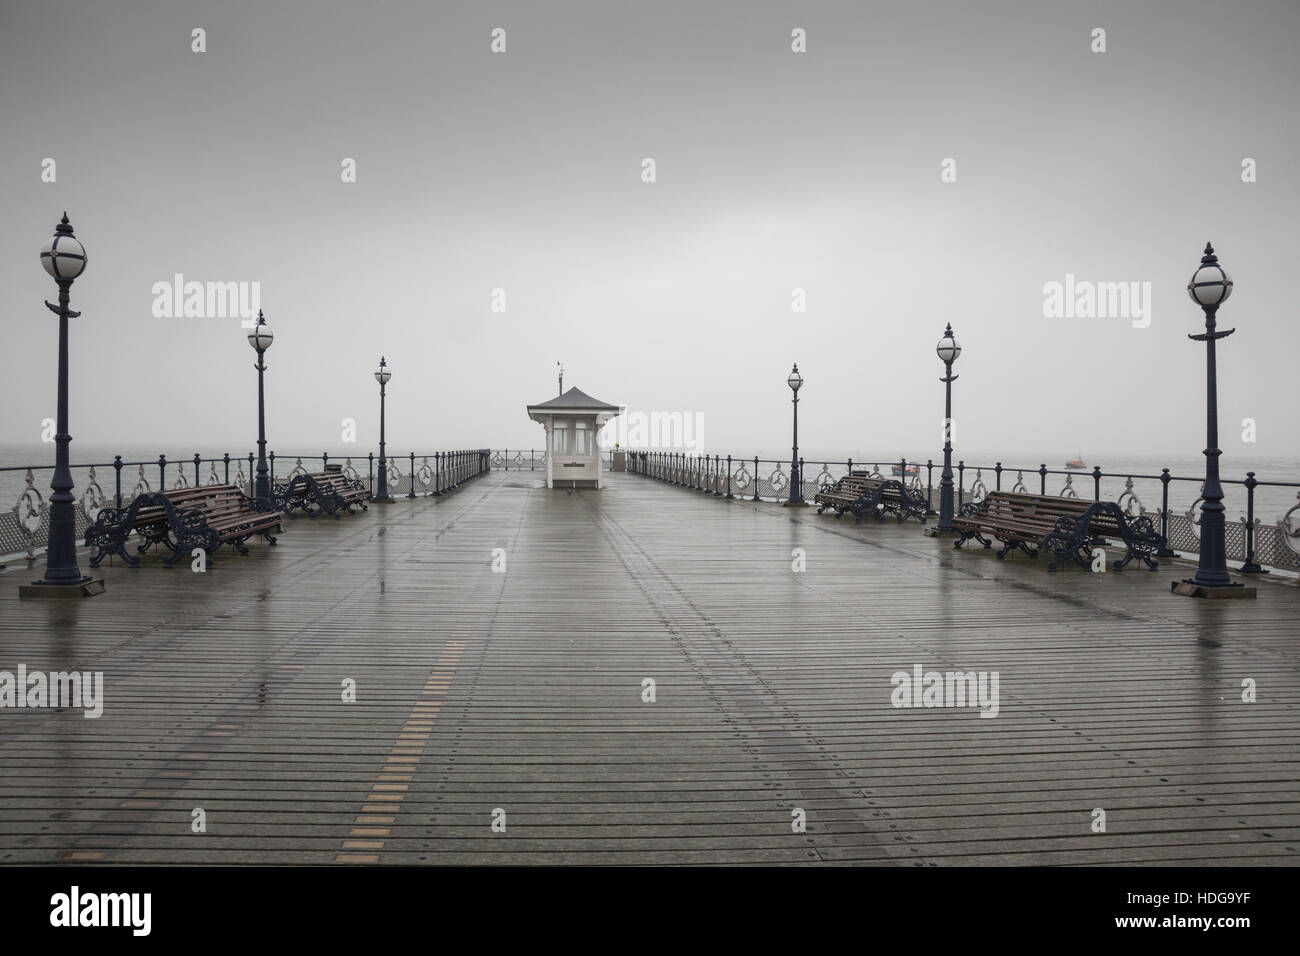 Swanage, United Kingdom. 12th December 2016. The Victorian pier in Swanage this morning after heavy rain. There - Stock Image